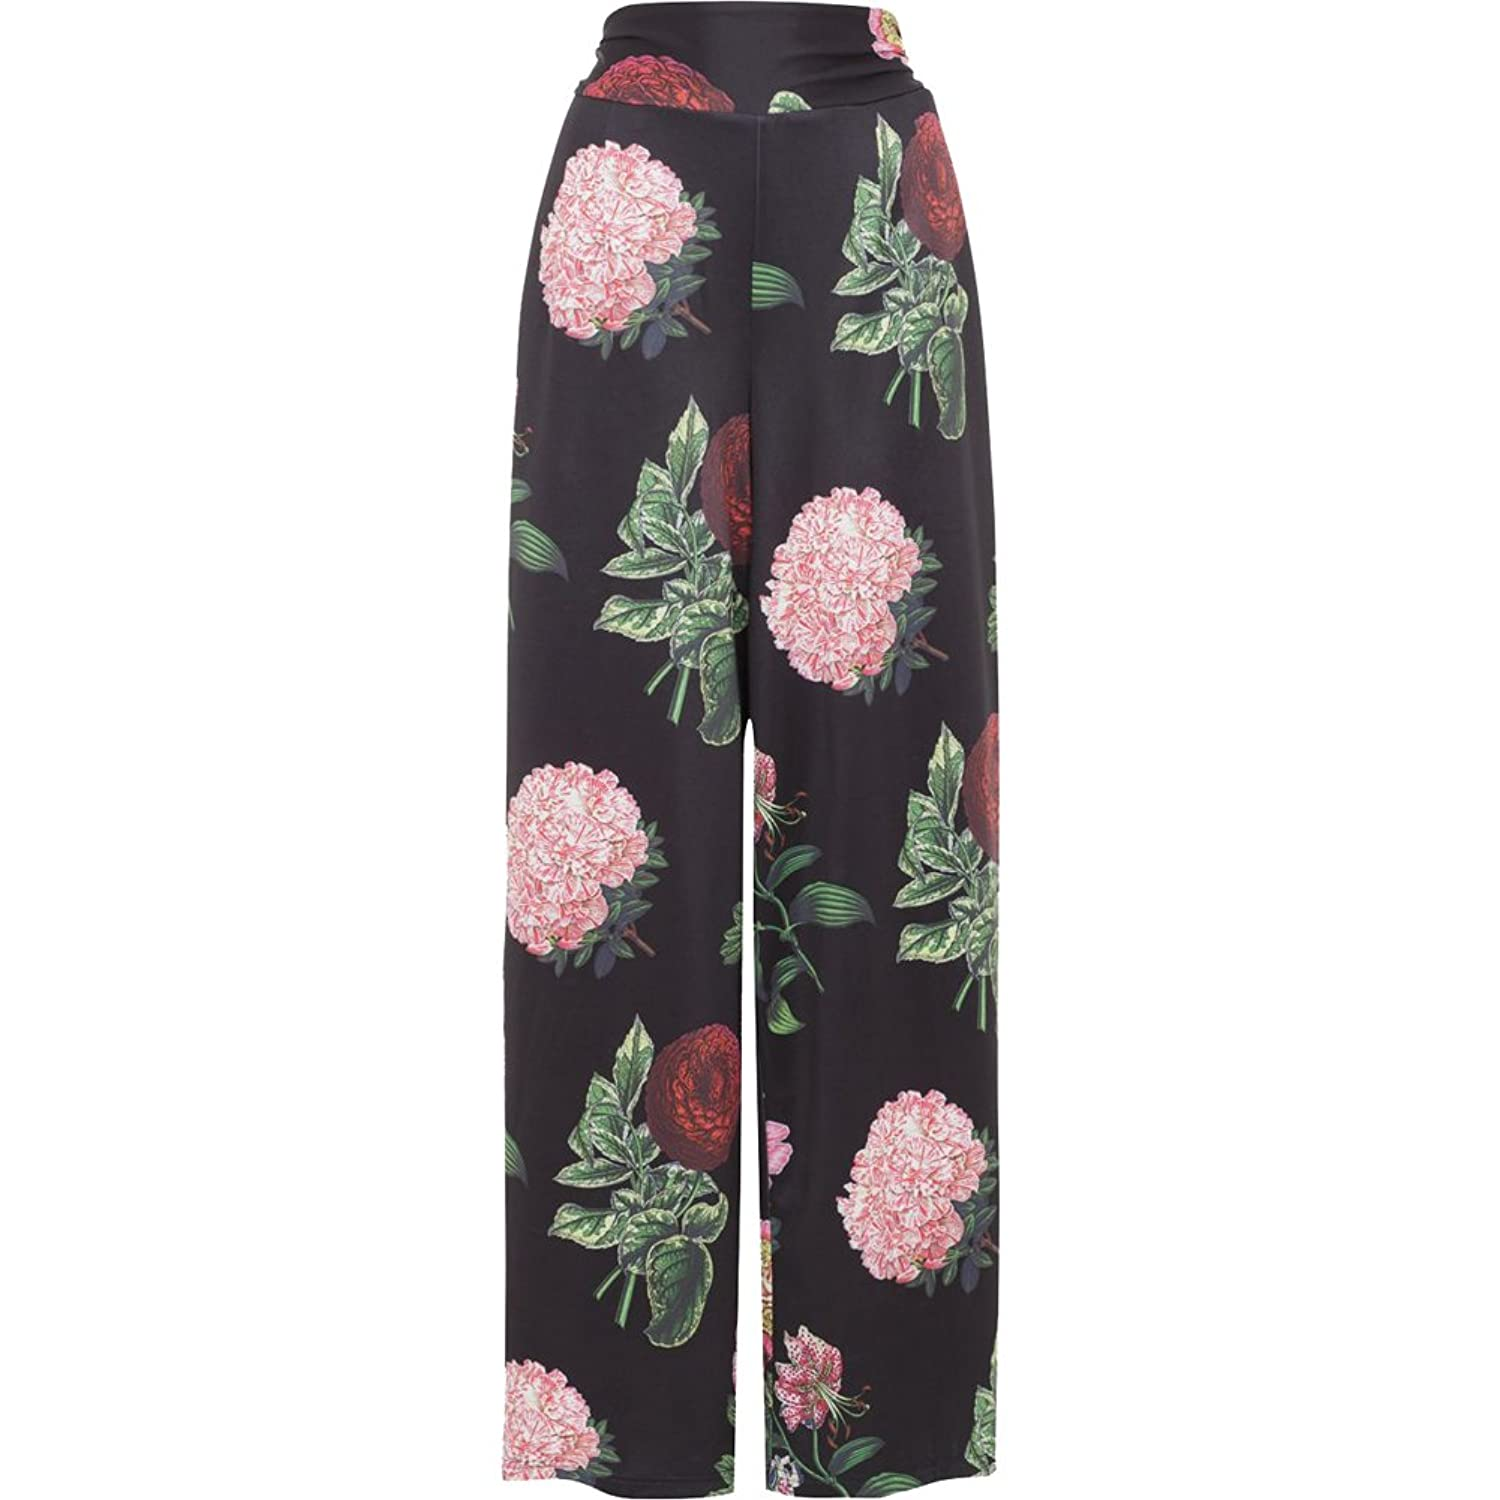 1920s Style Women's Pants, Trousers, Knickers, Tuxedo  NATALIA Large Vintage Floral Print Pants Black $57.99 AT vintagedancer.com